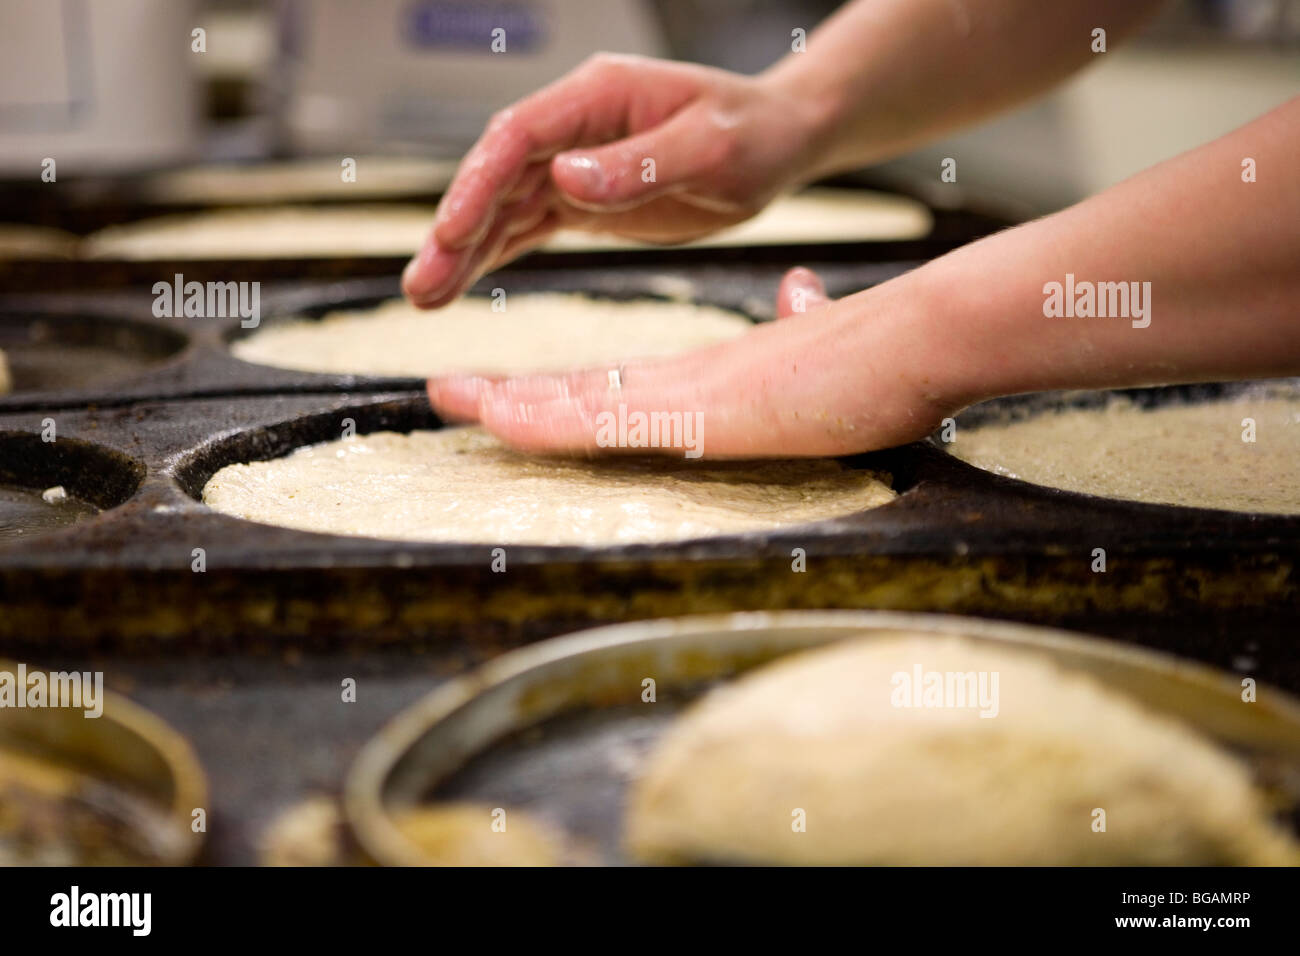 Hands patting down dough for pizza bases in trays - Stock Image